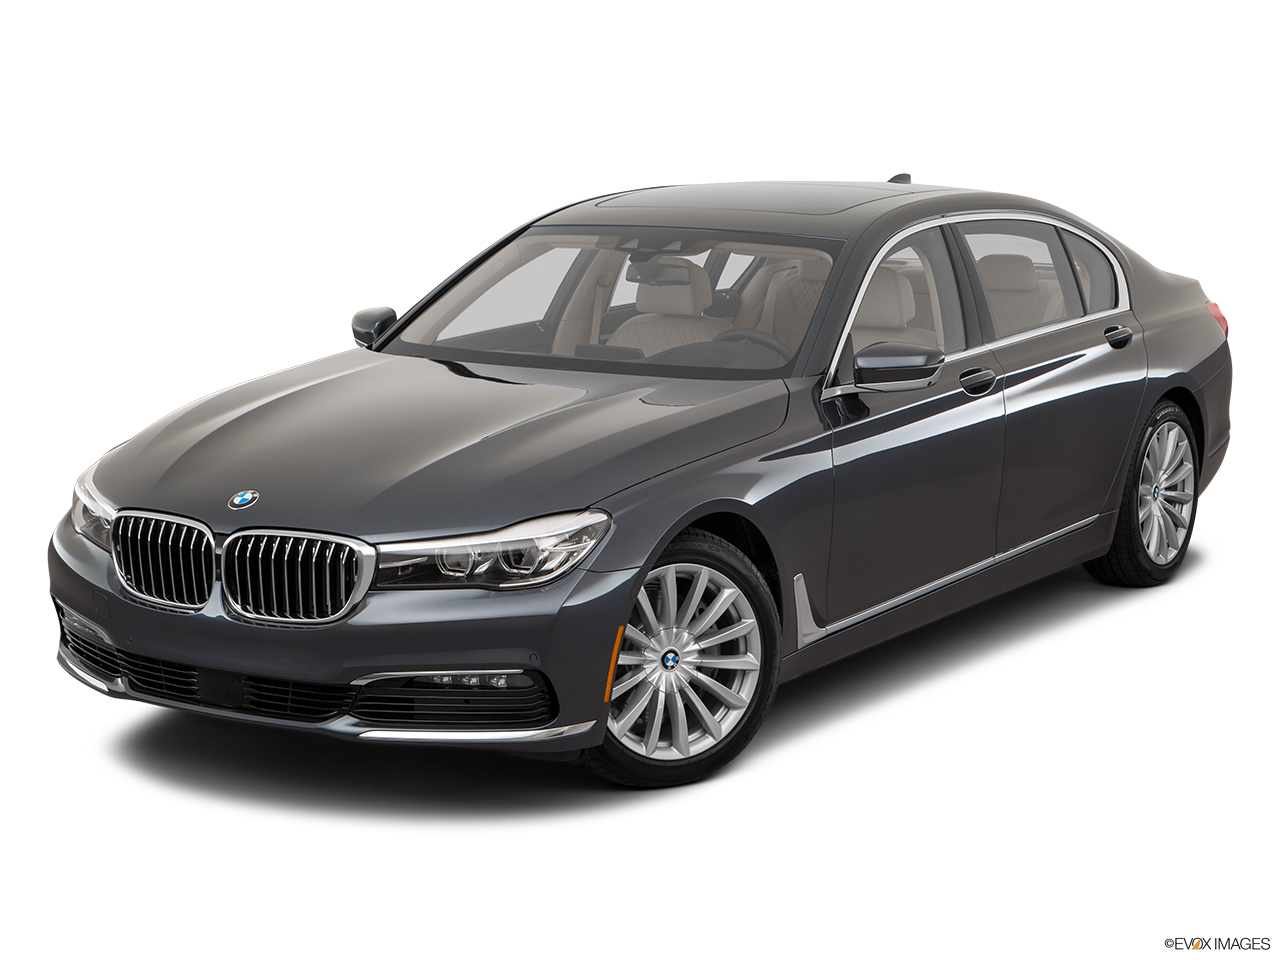 Bmw 3 Series 2017 Prices In Uae Specs Reviews For Dubai